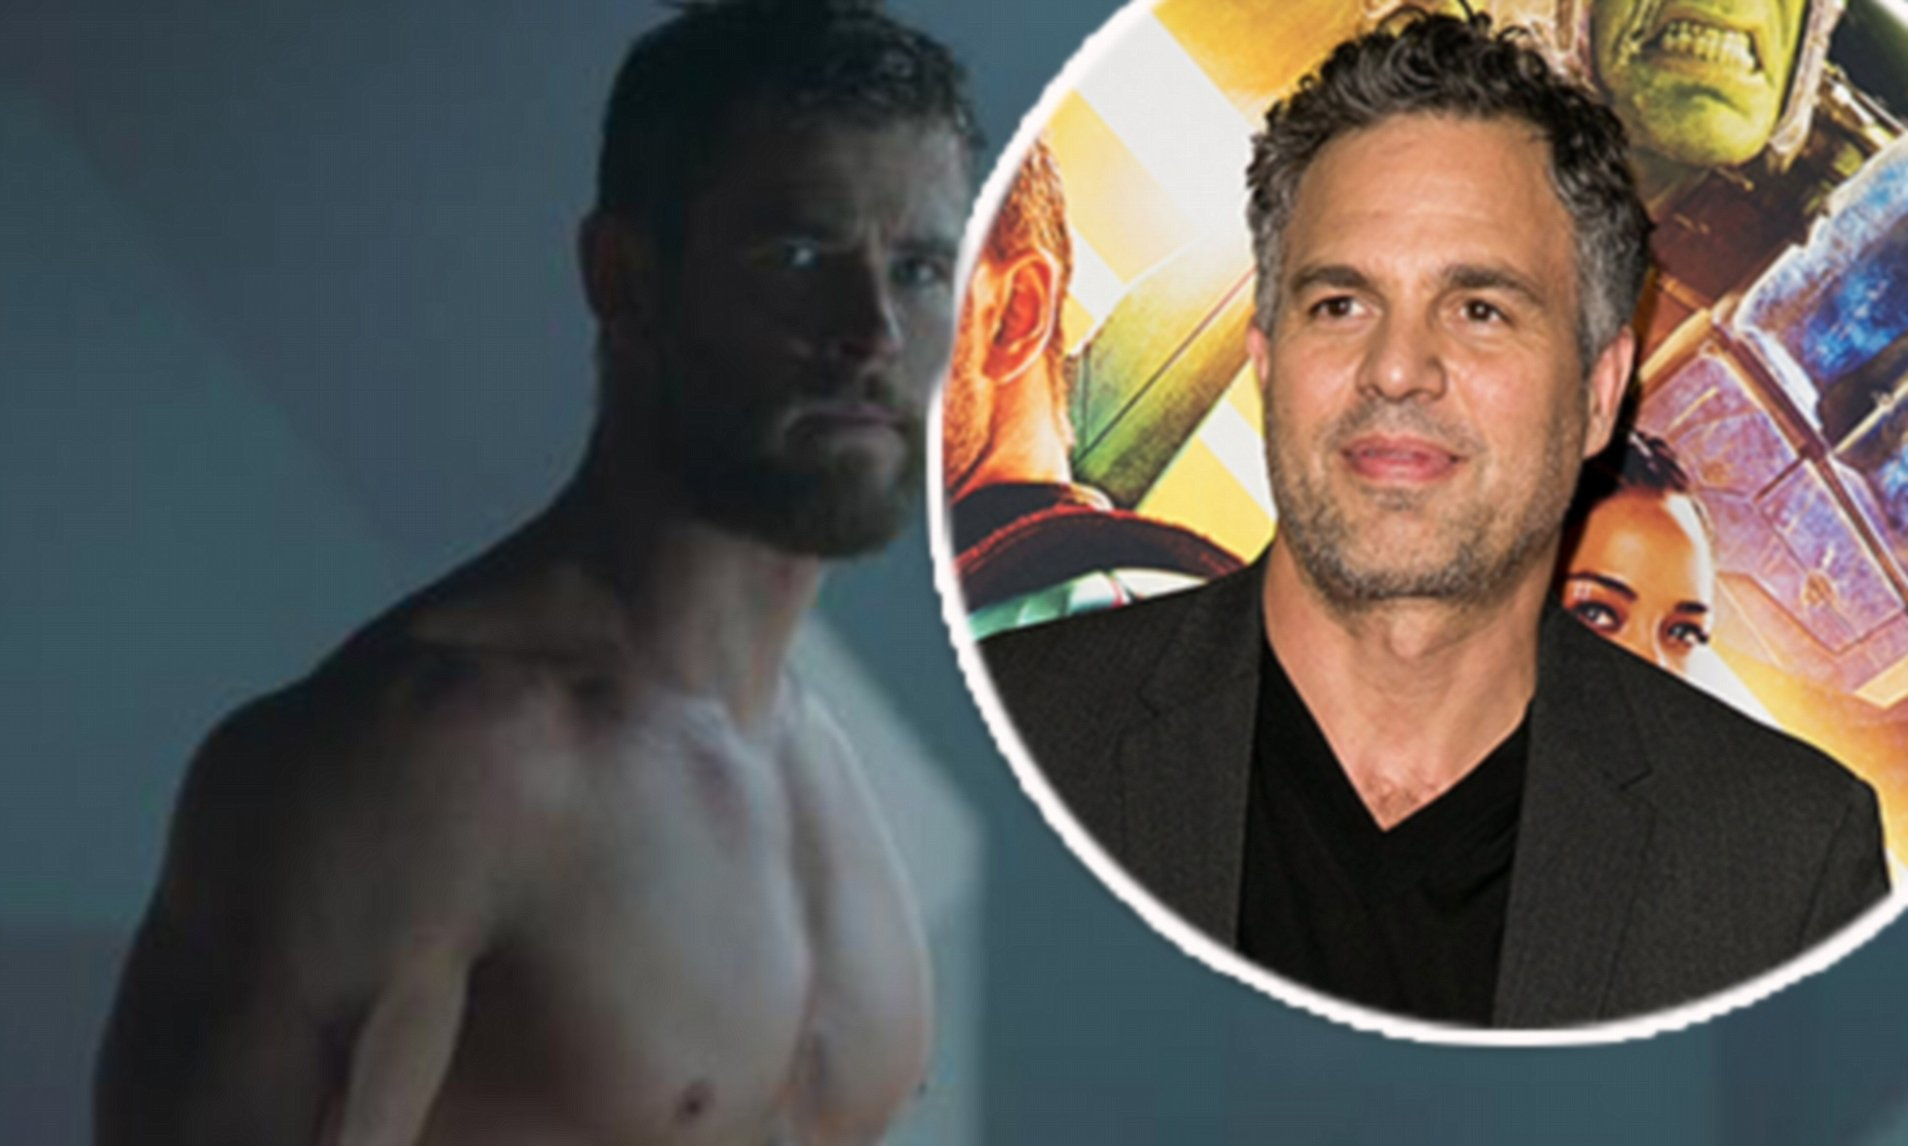 Mark ruffalo full frontal